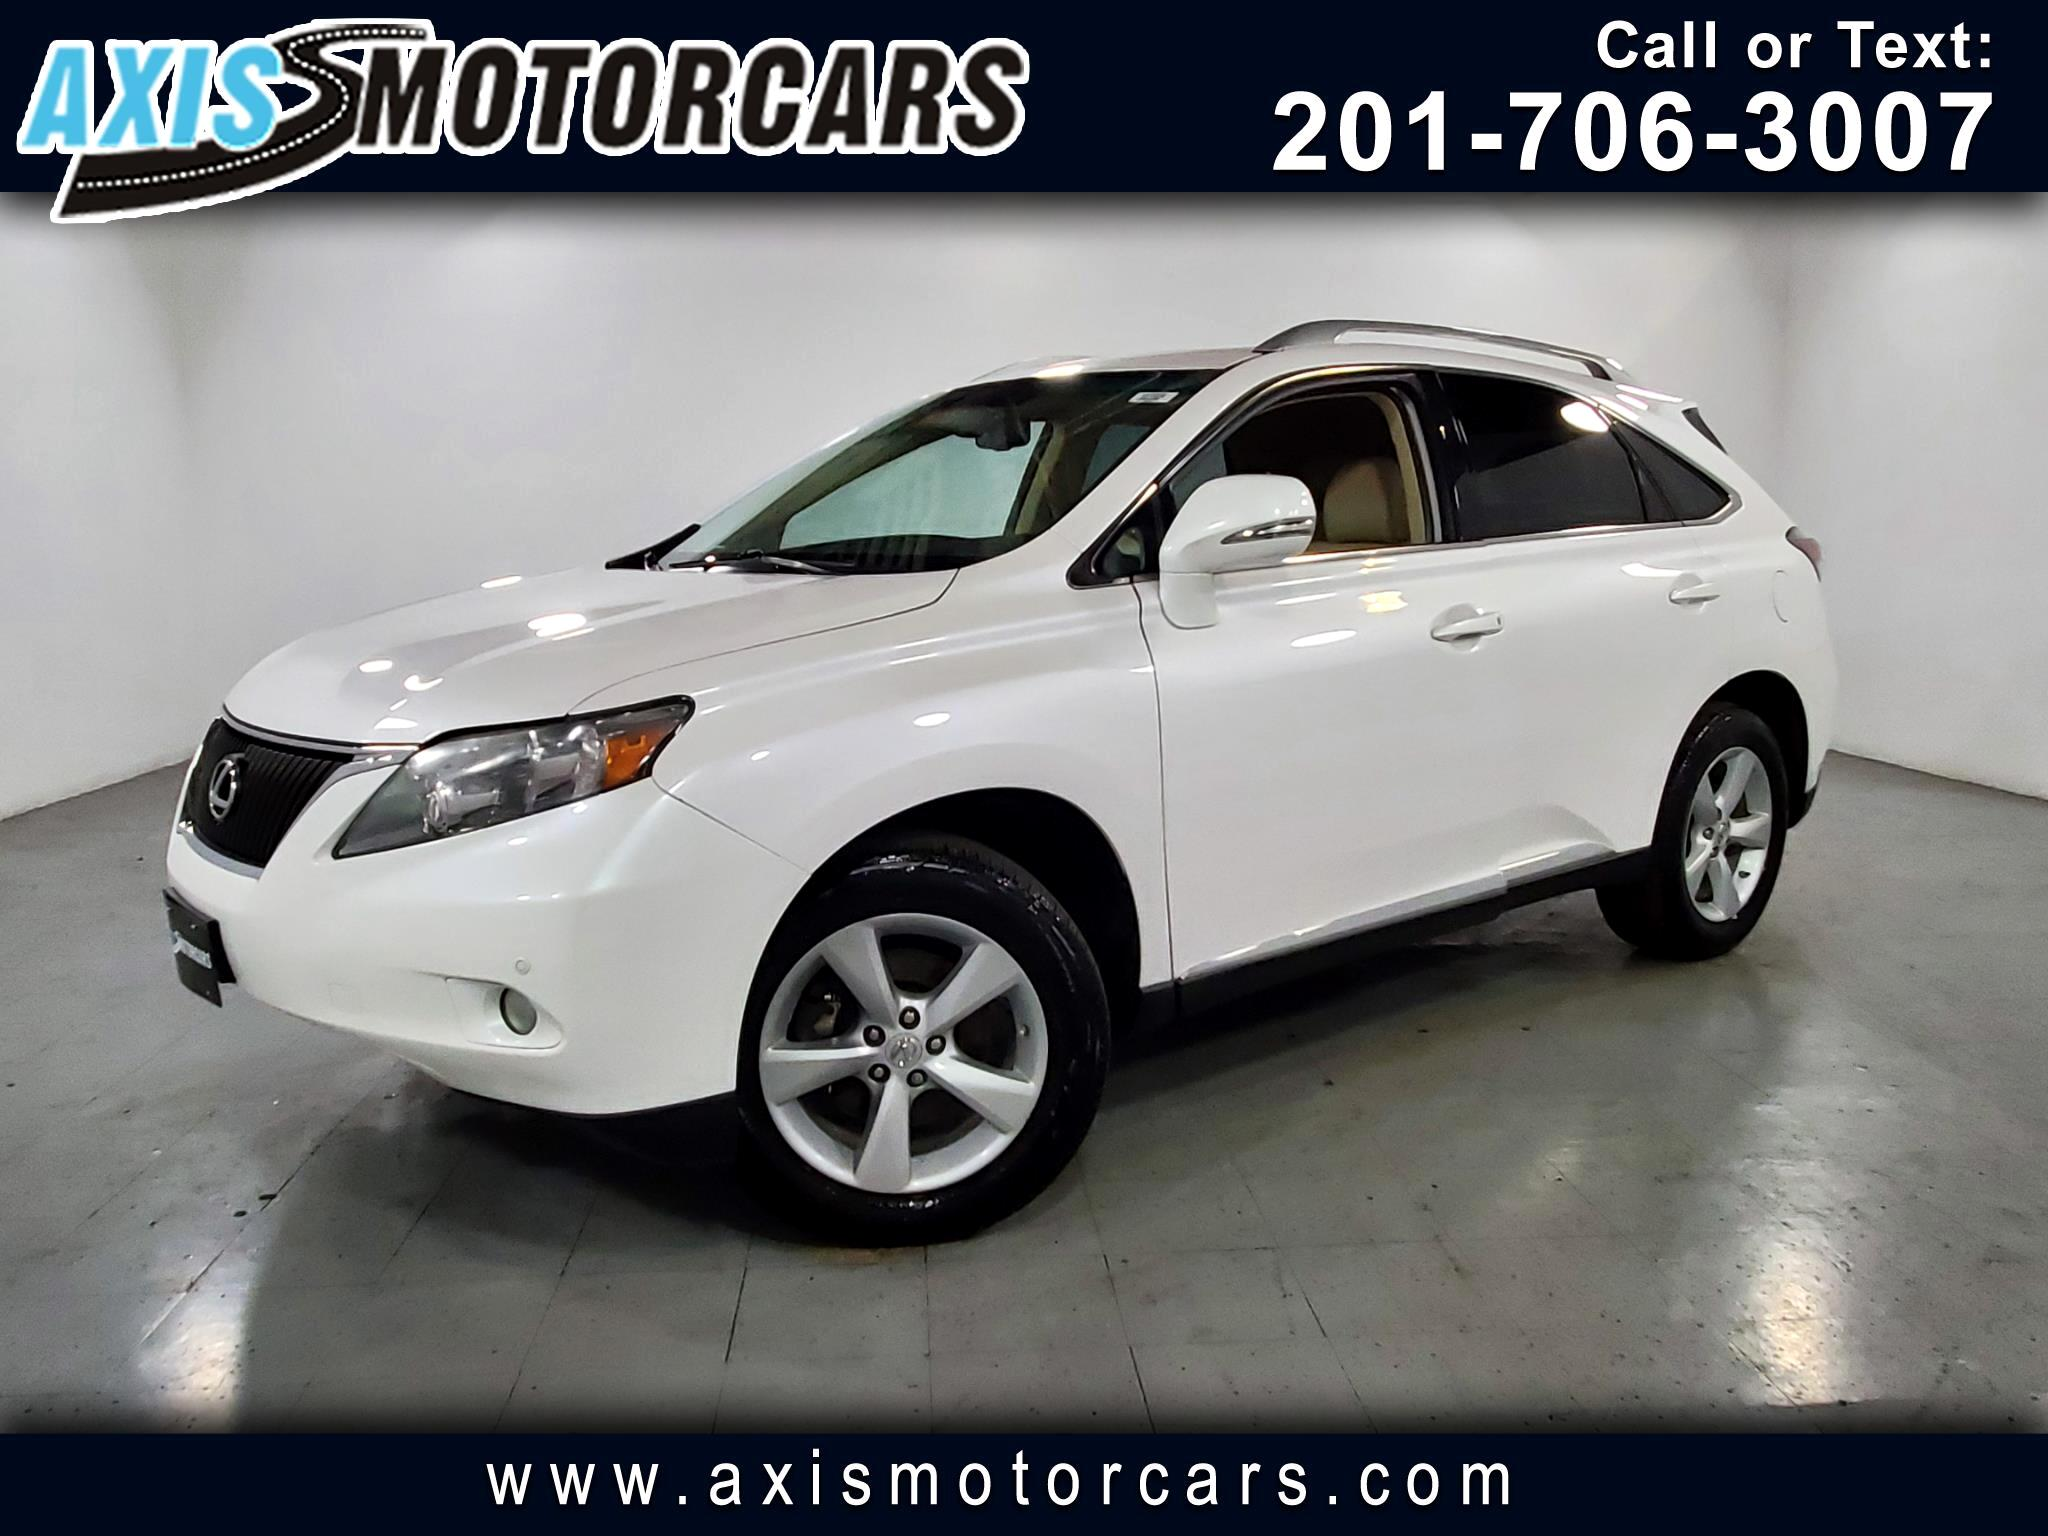 2012 Lexus RX 350 w/Sunroof Leather